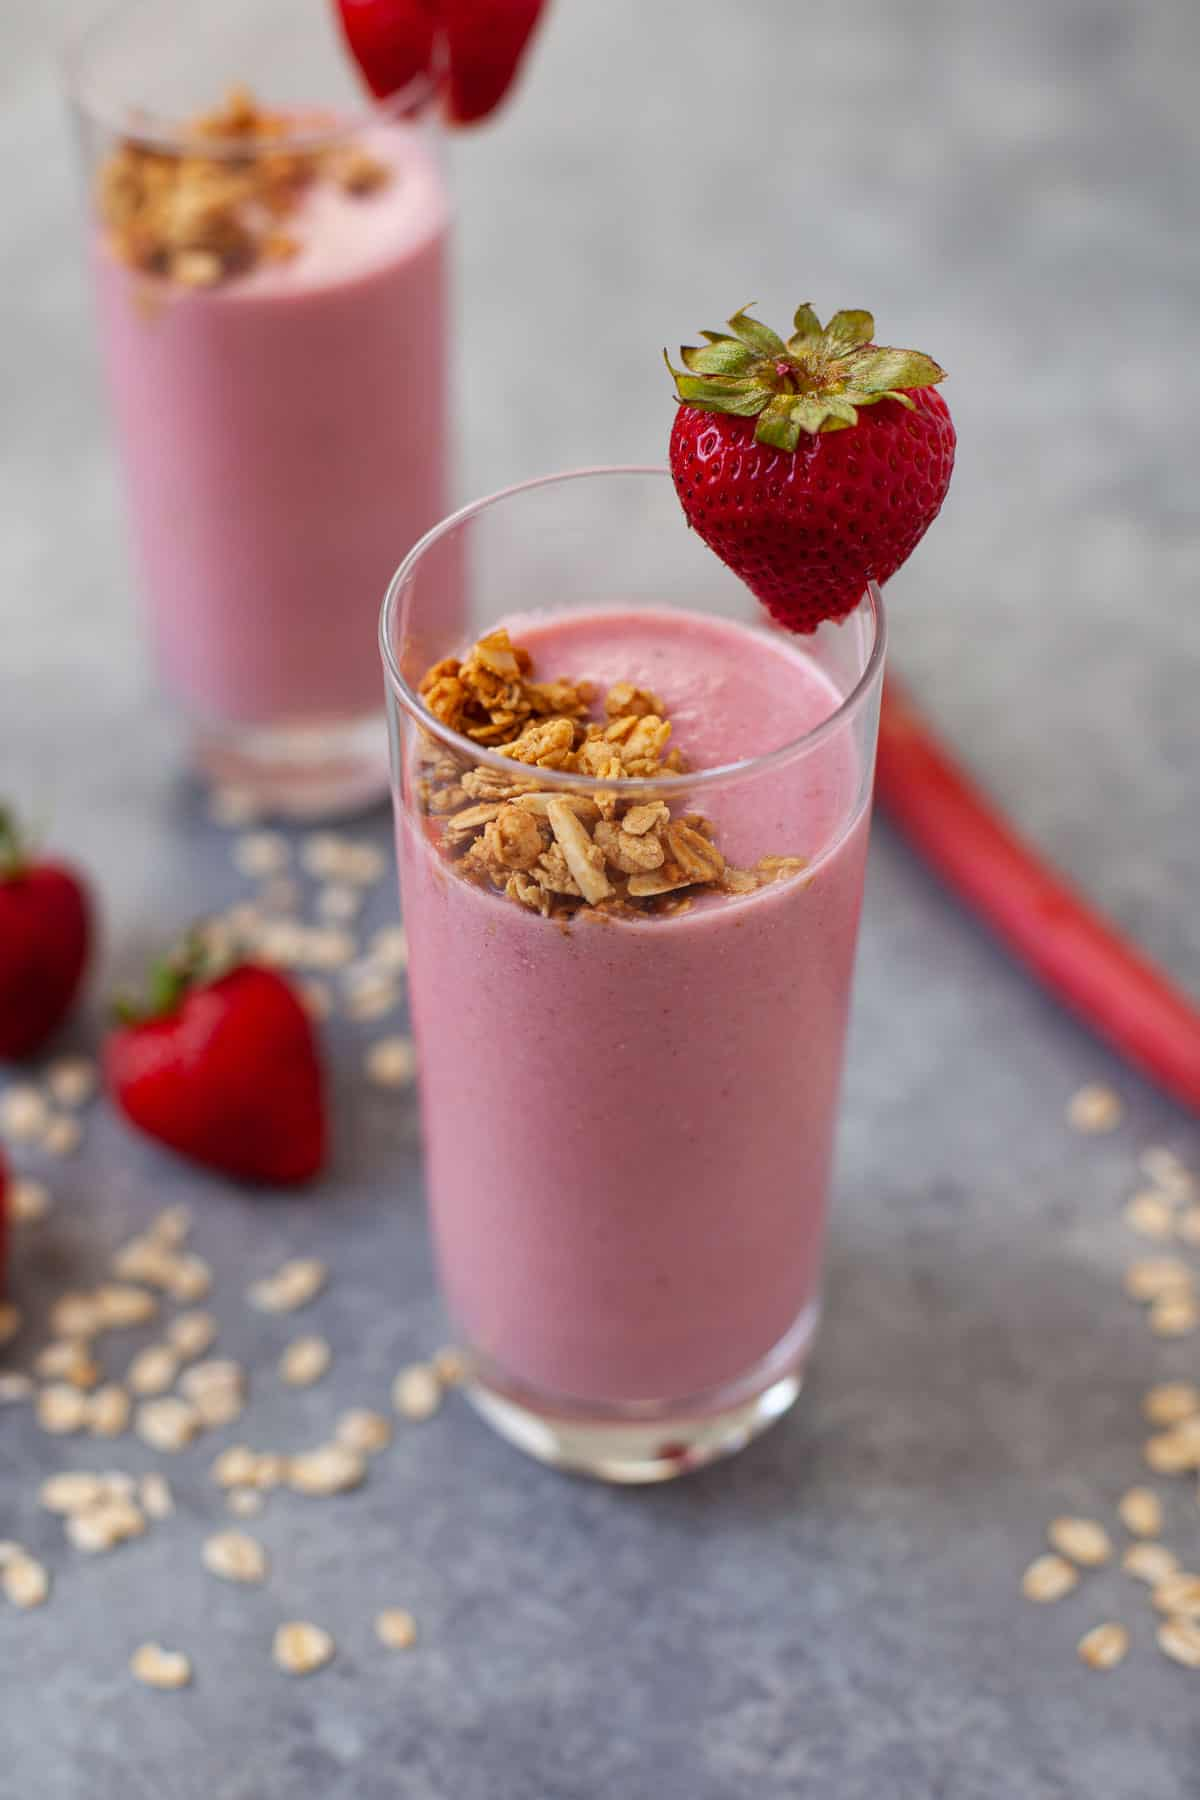 two glasses of strawberry rhubarb pie smoothie with fresh strawberries and granola for garnish